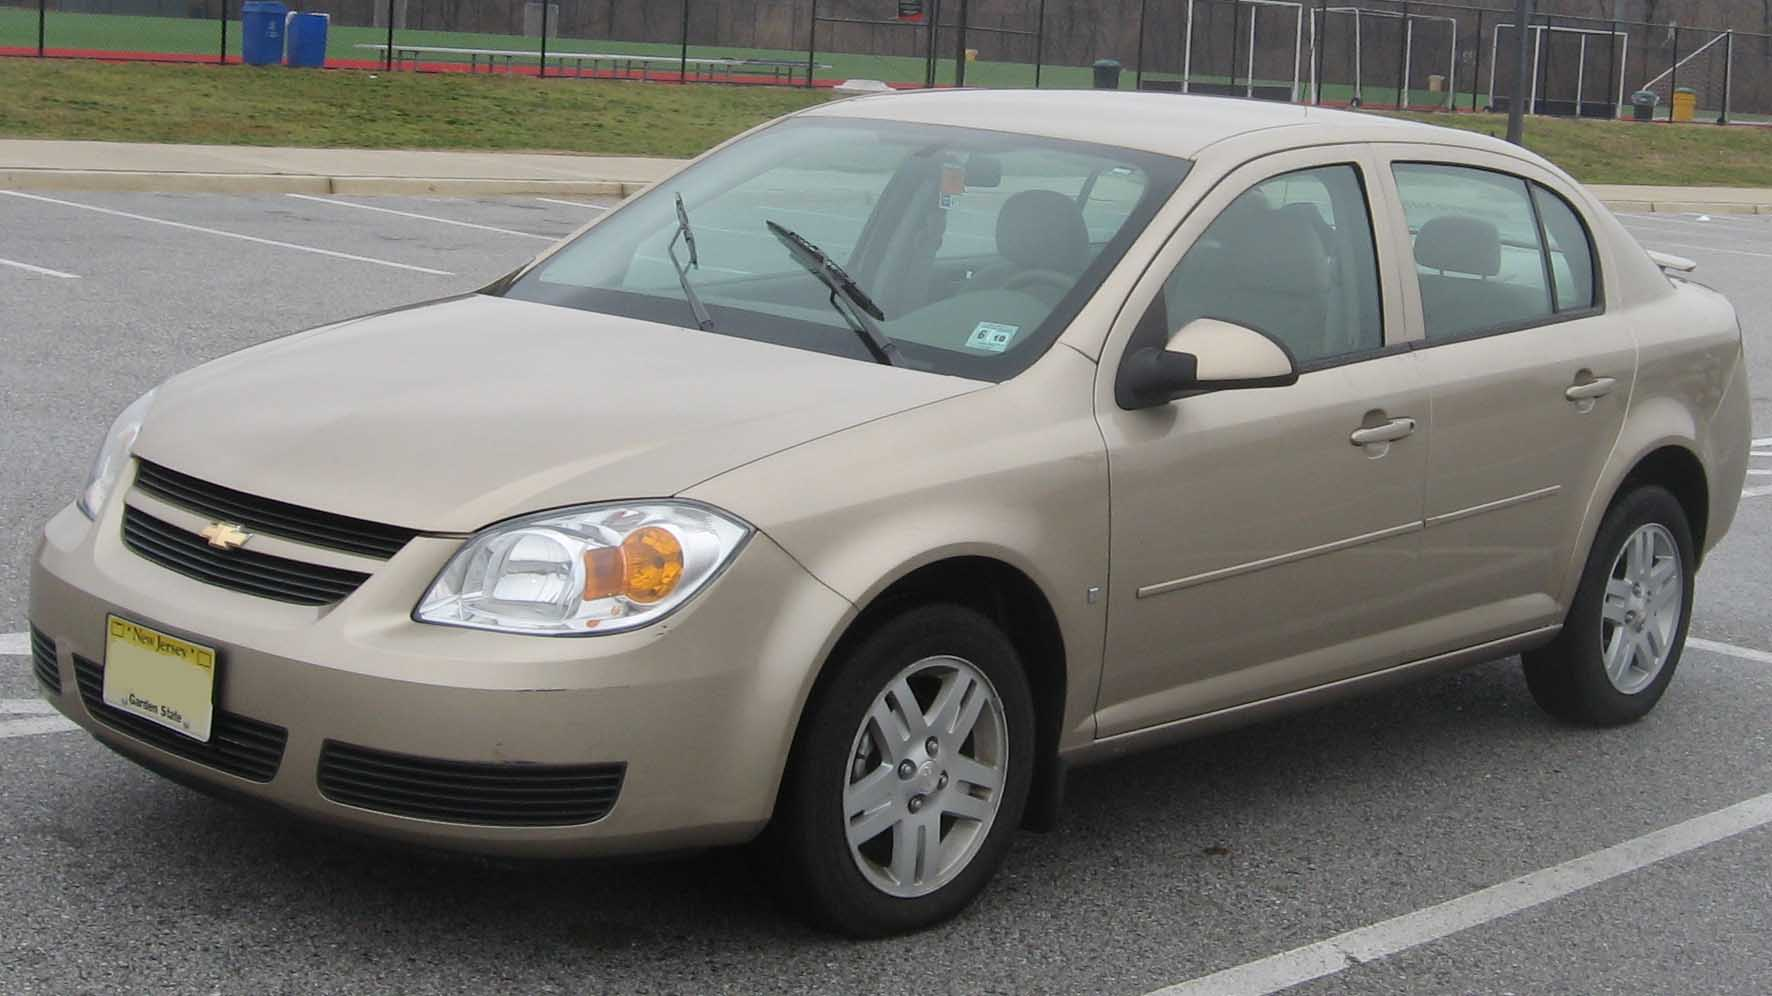 All Chevy 2005 chevy colbalt : File:Chevrolet Cobalt LT sedan.jpg - Wikimedia Commons